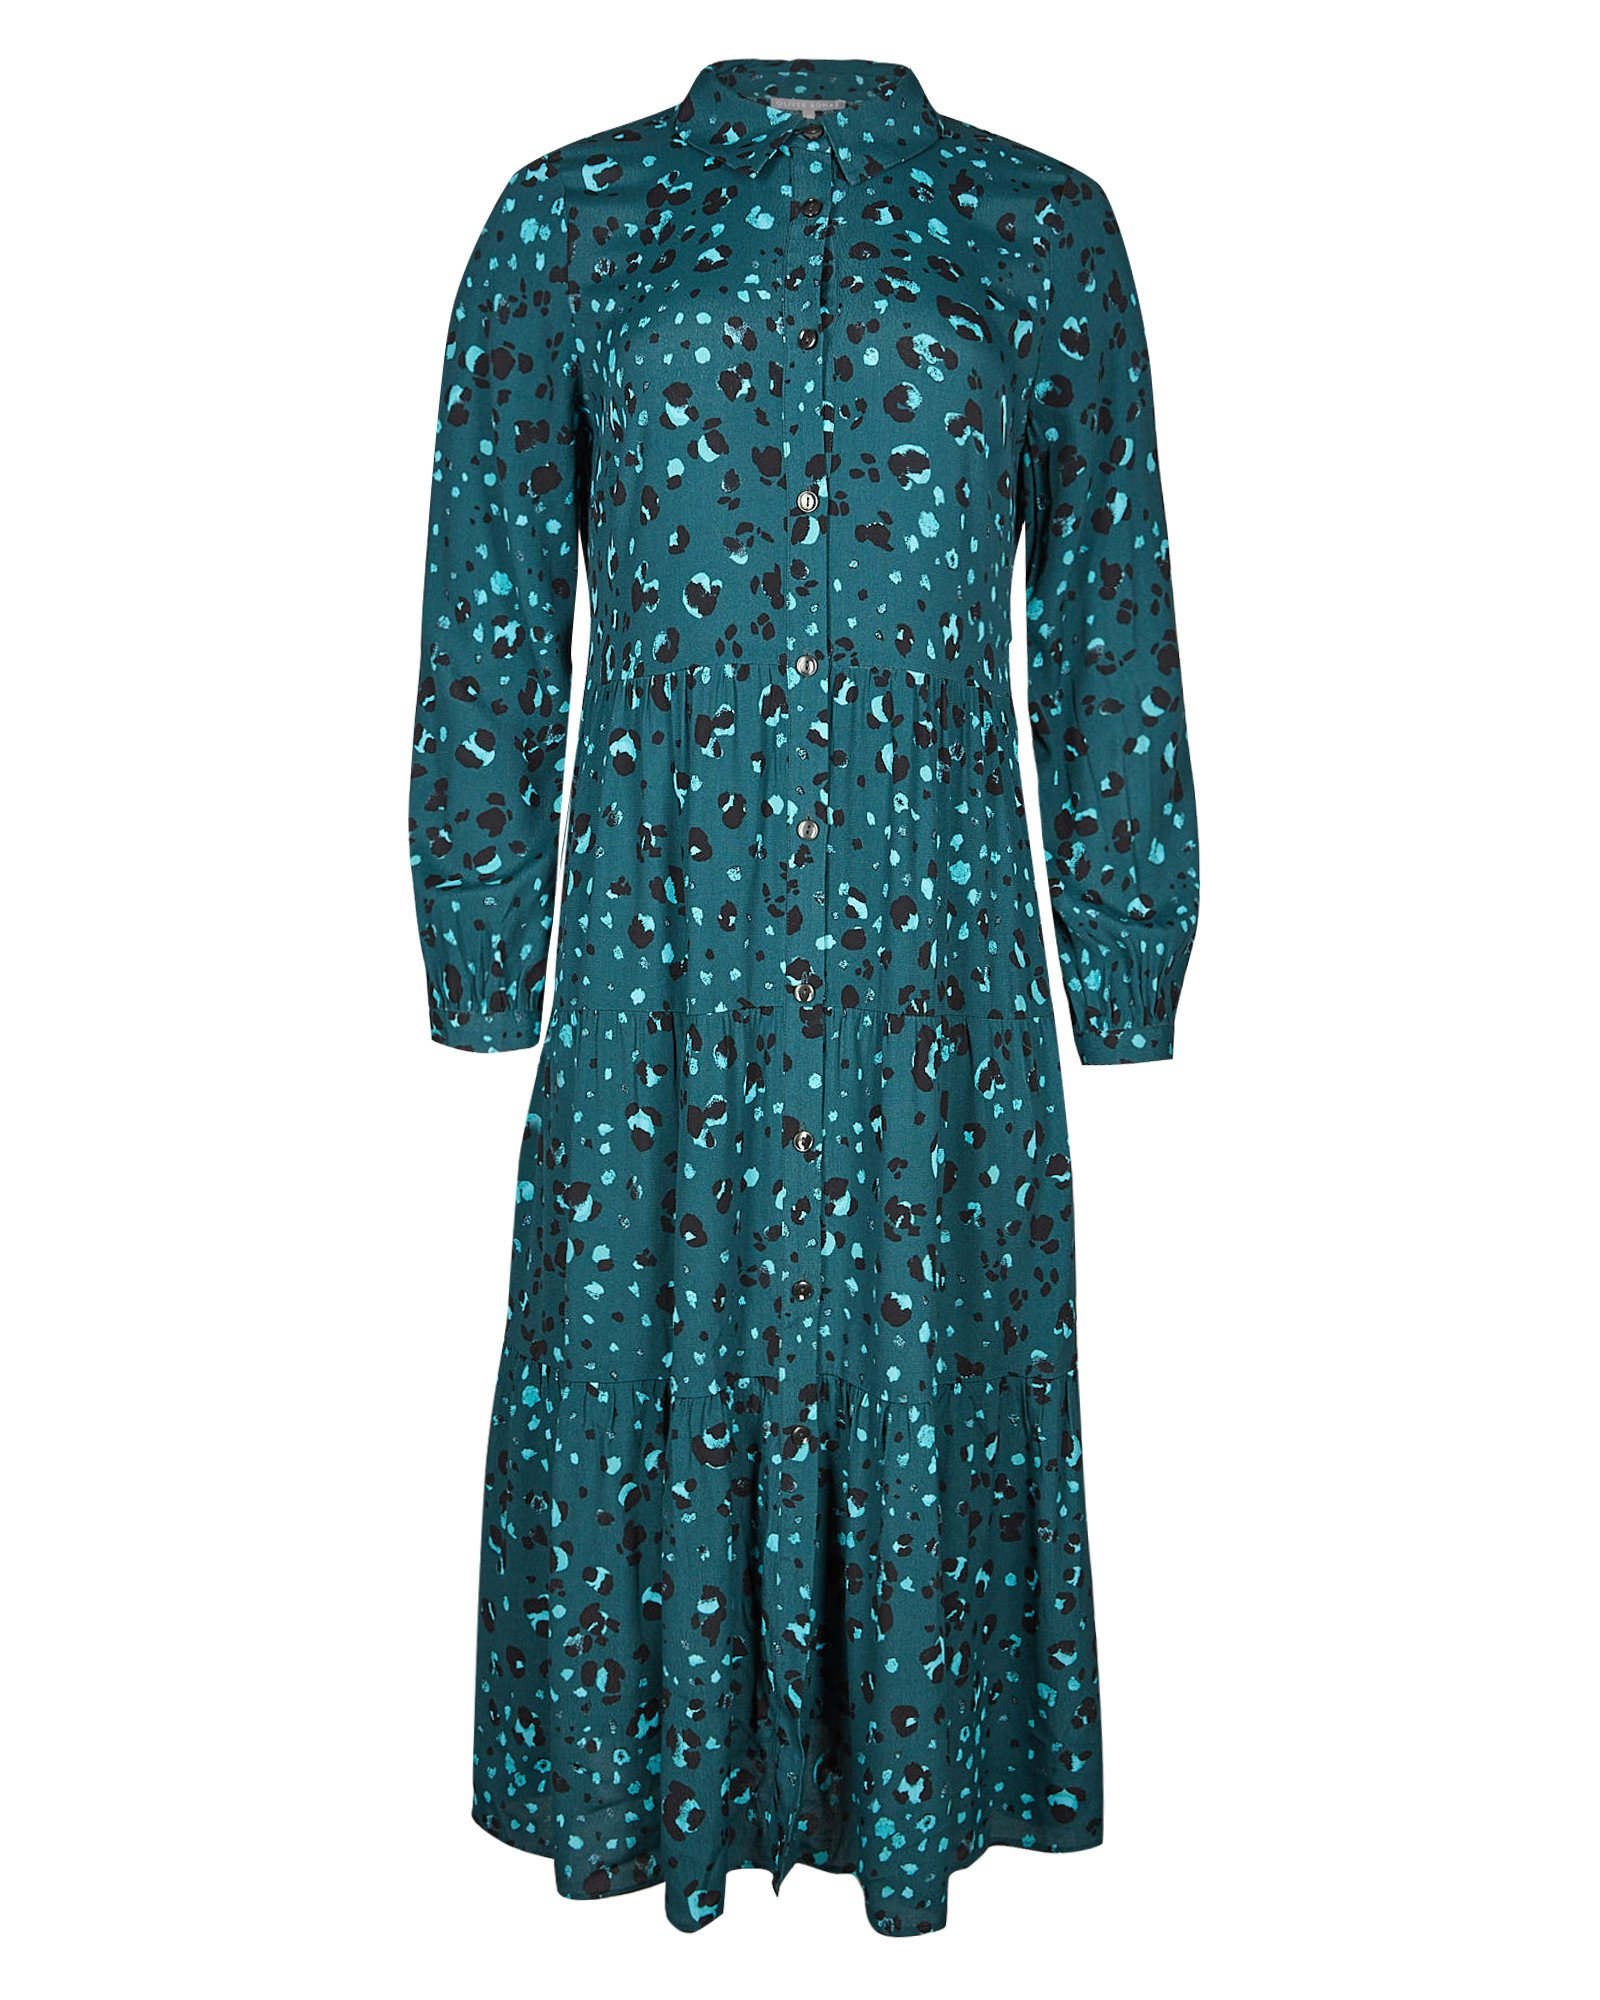 Snow Leopard Print Teal Blue Midi Shirt Dress